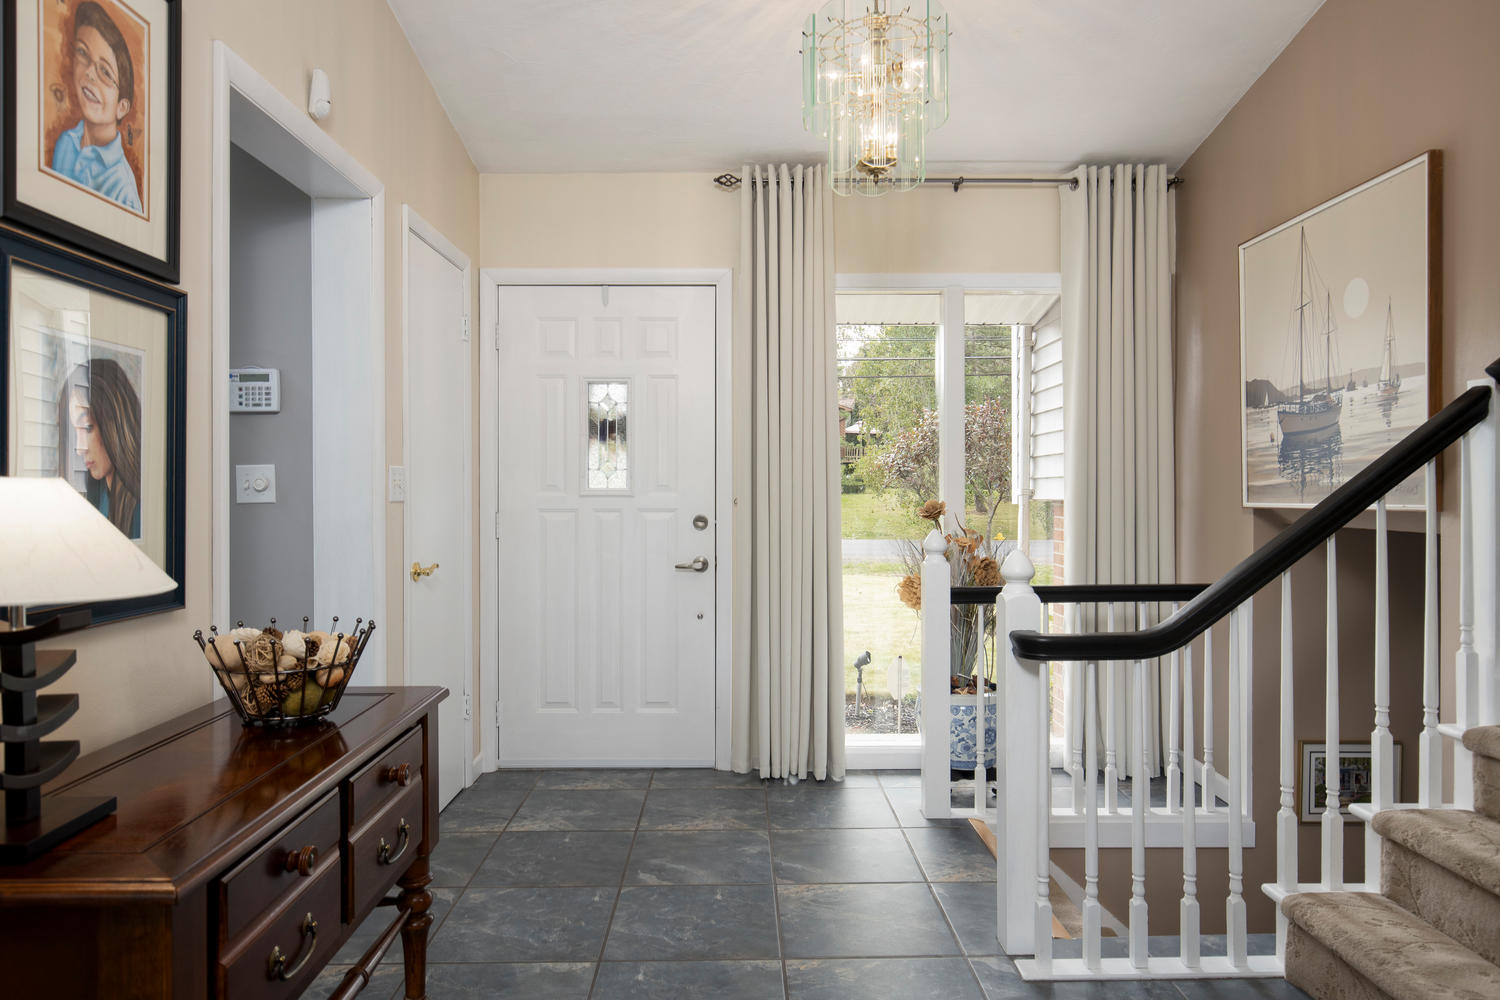 5258 Armor Duells Rd Orchard-large-003-013-Foyer-1500×1000-72dpi